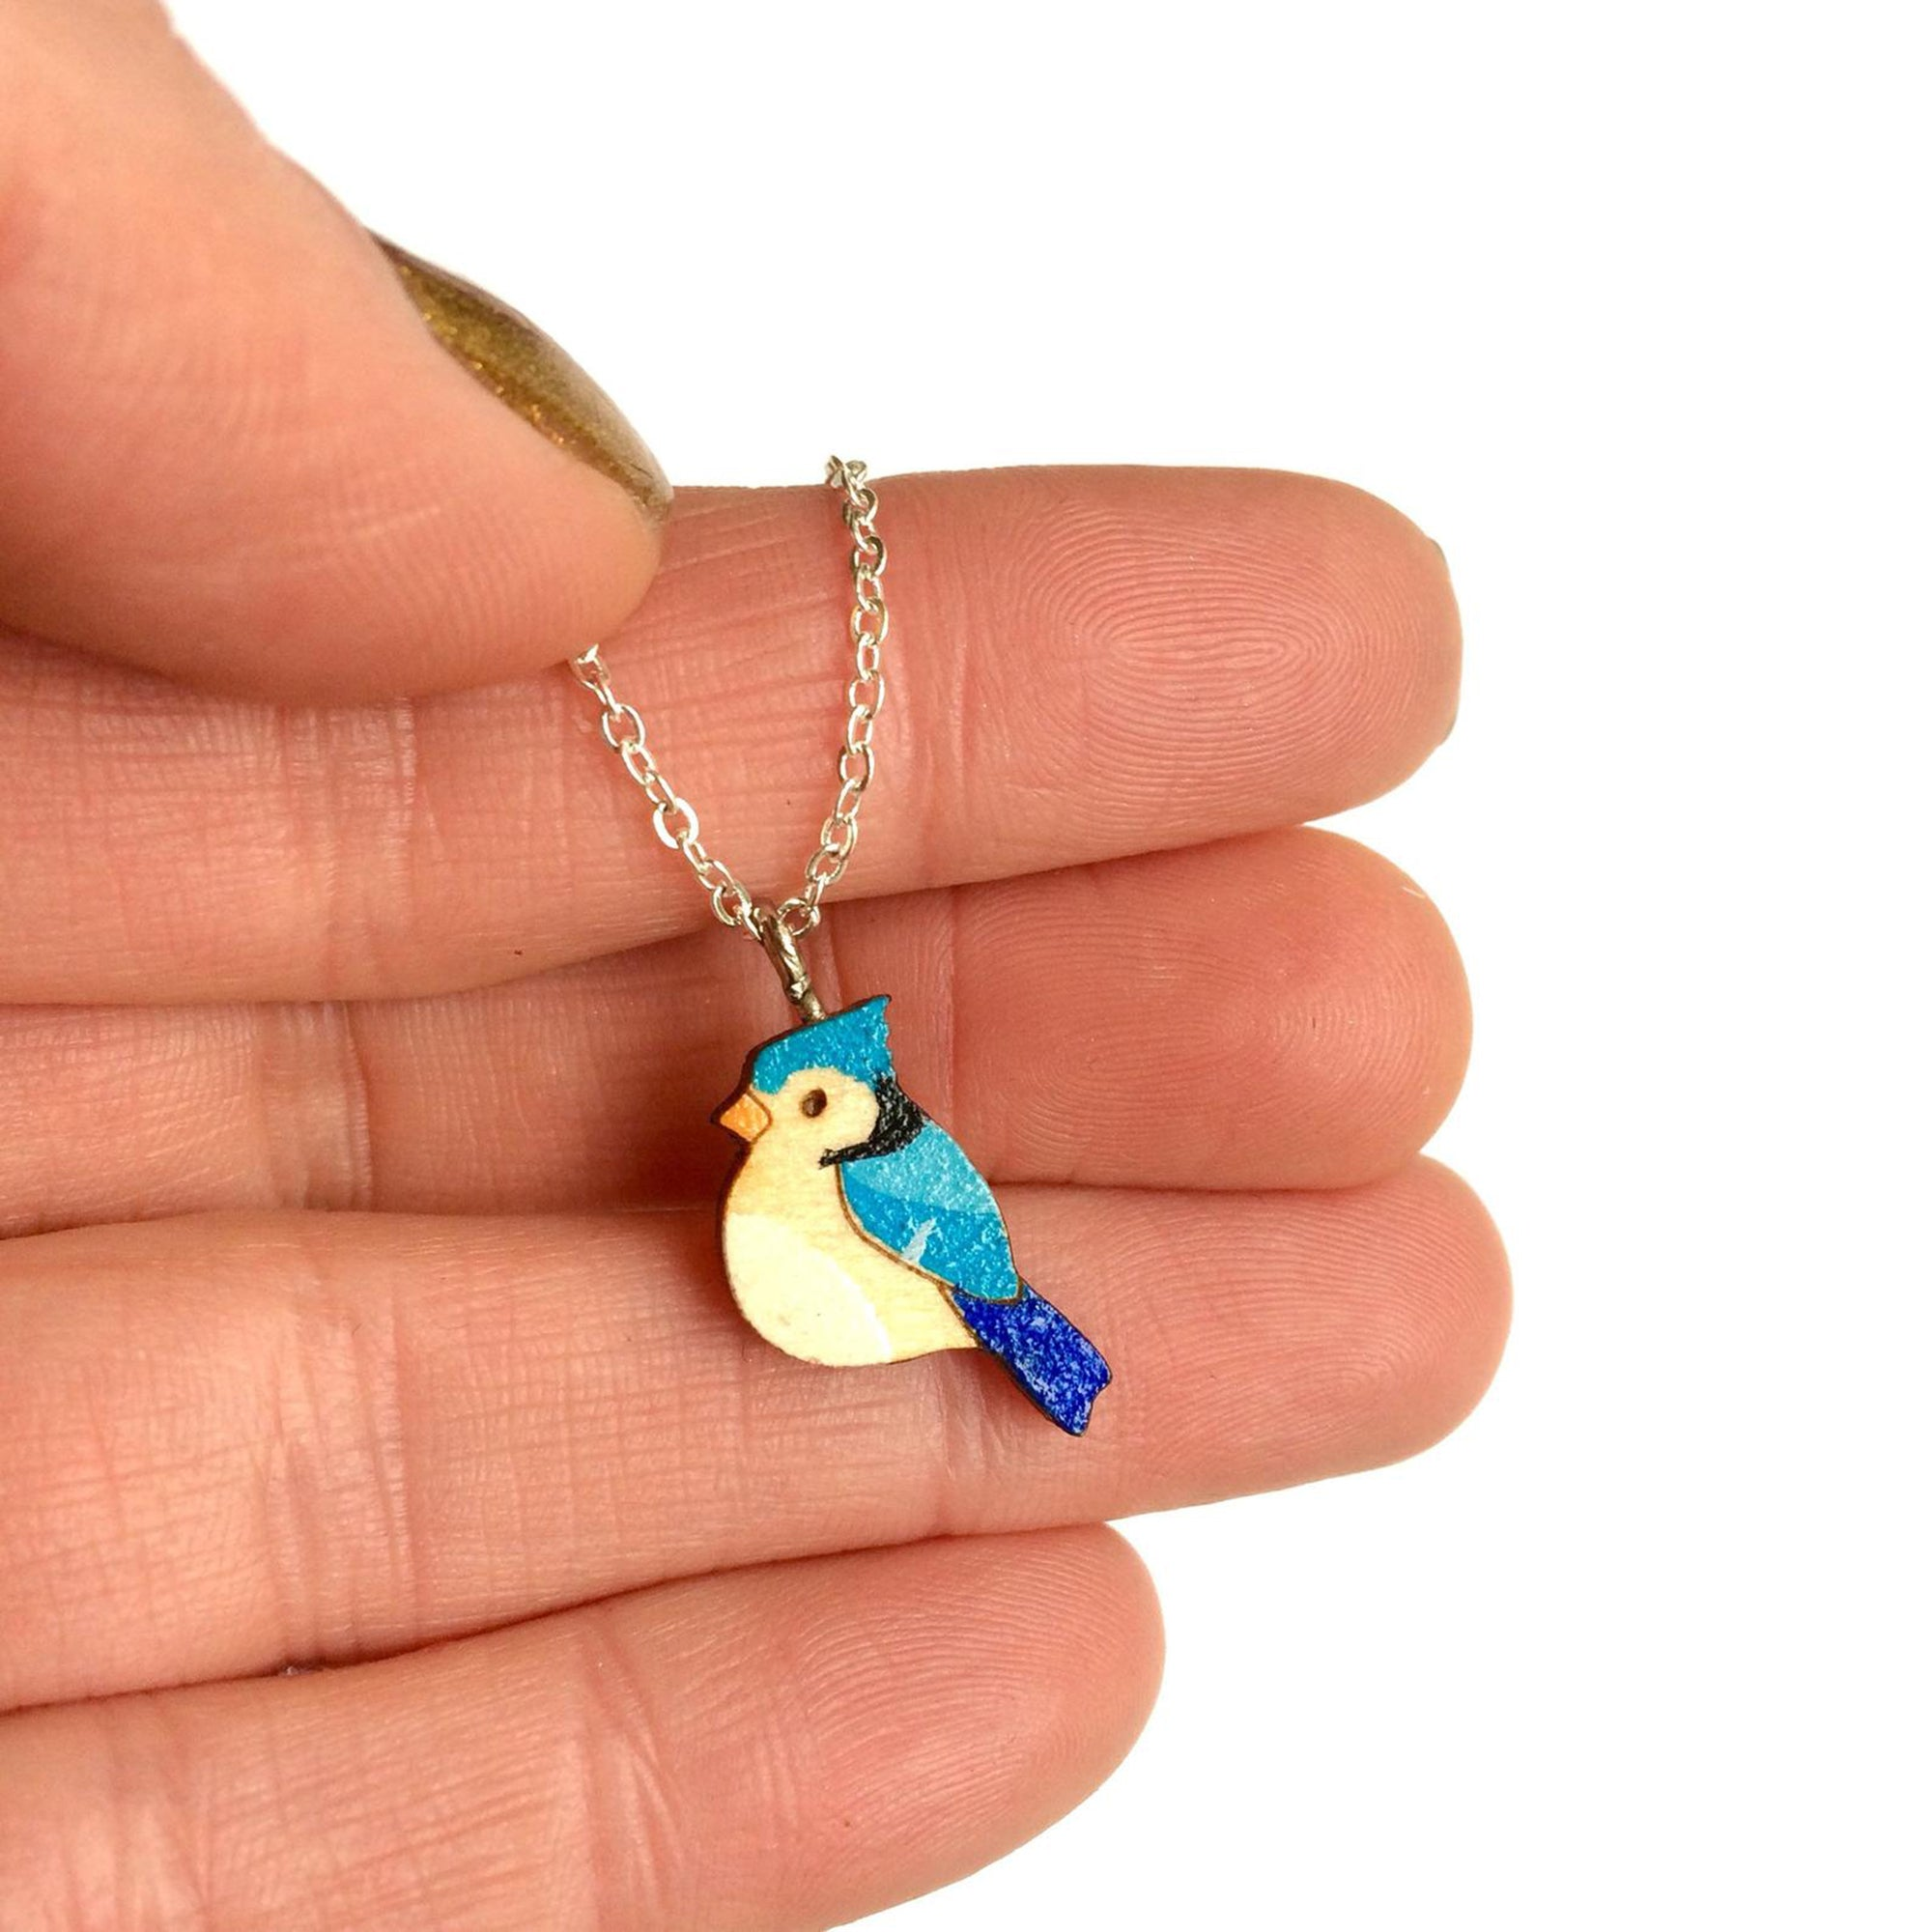 Bluejay necklace